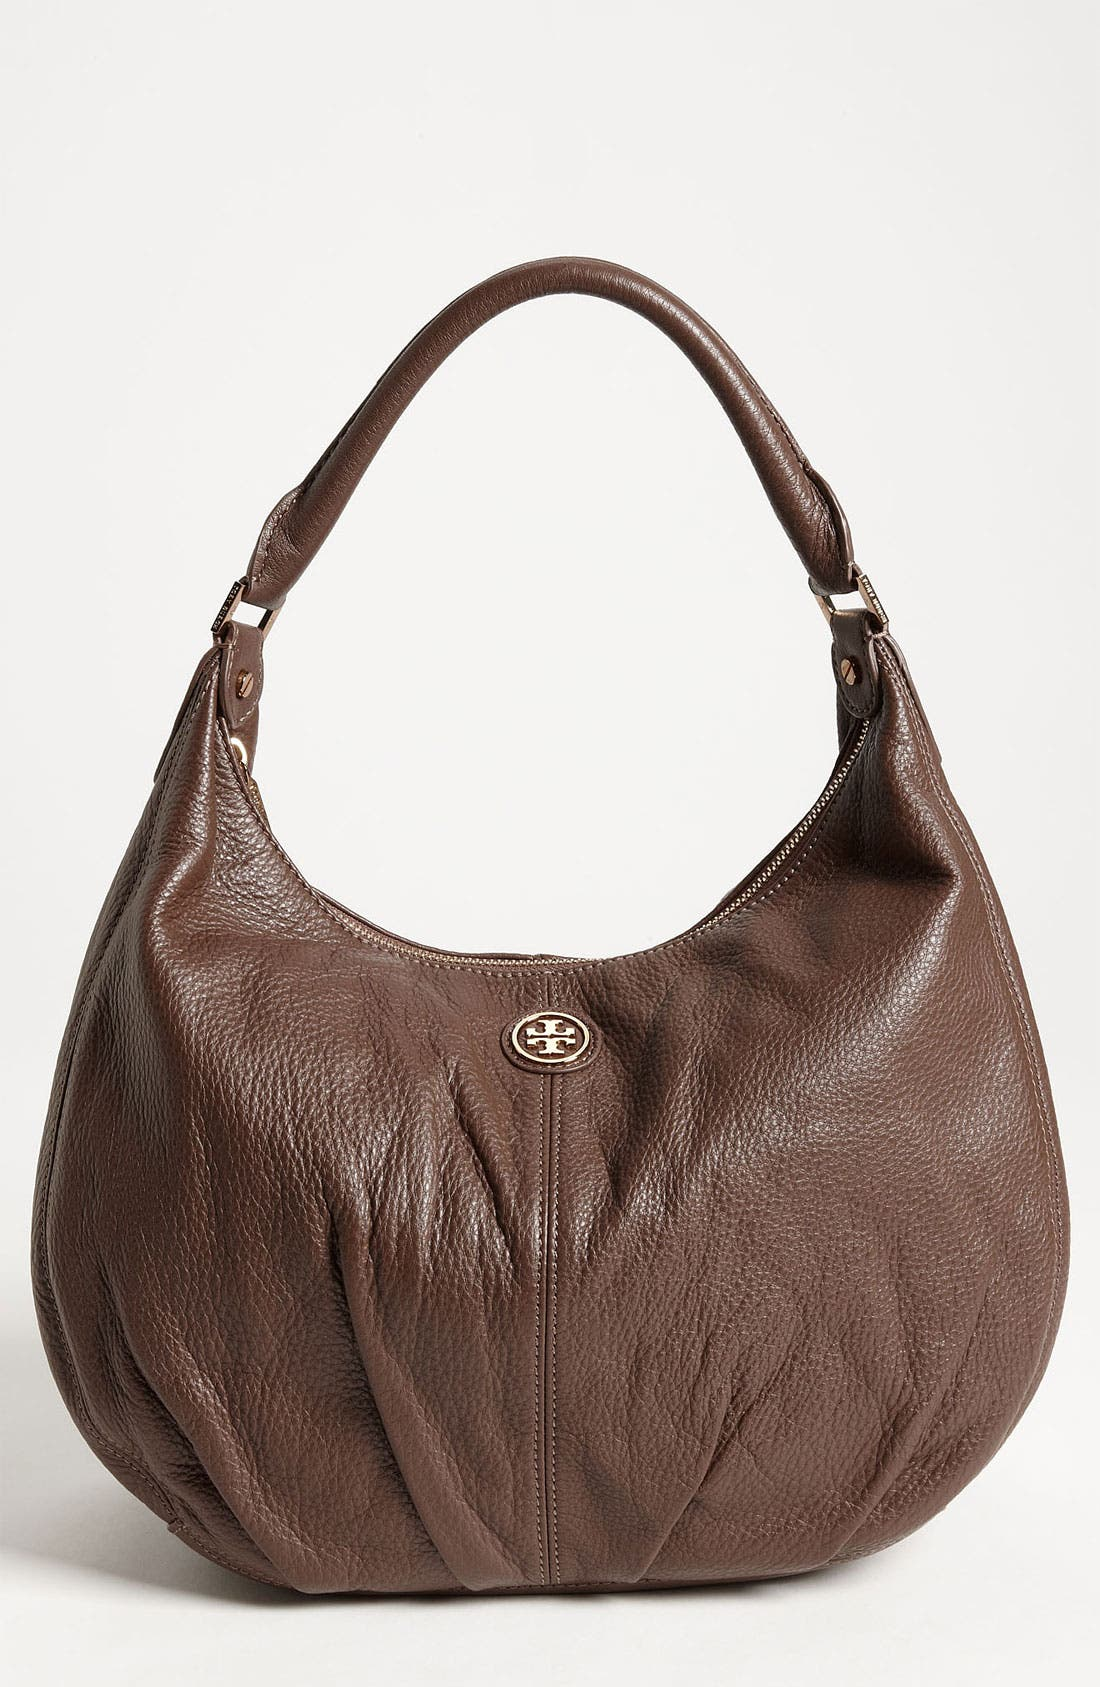 Alternate Image 1 Selected - Tory Burch 'Dakota' Hobo